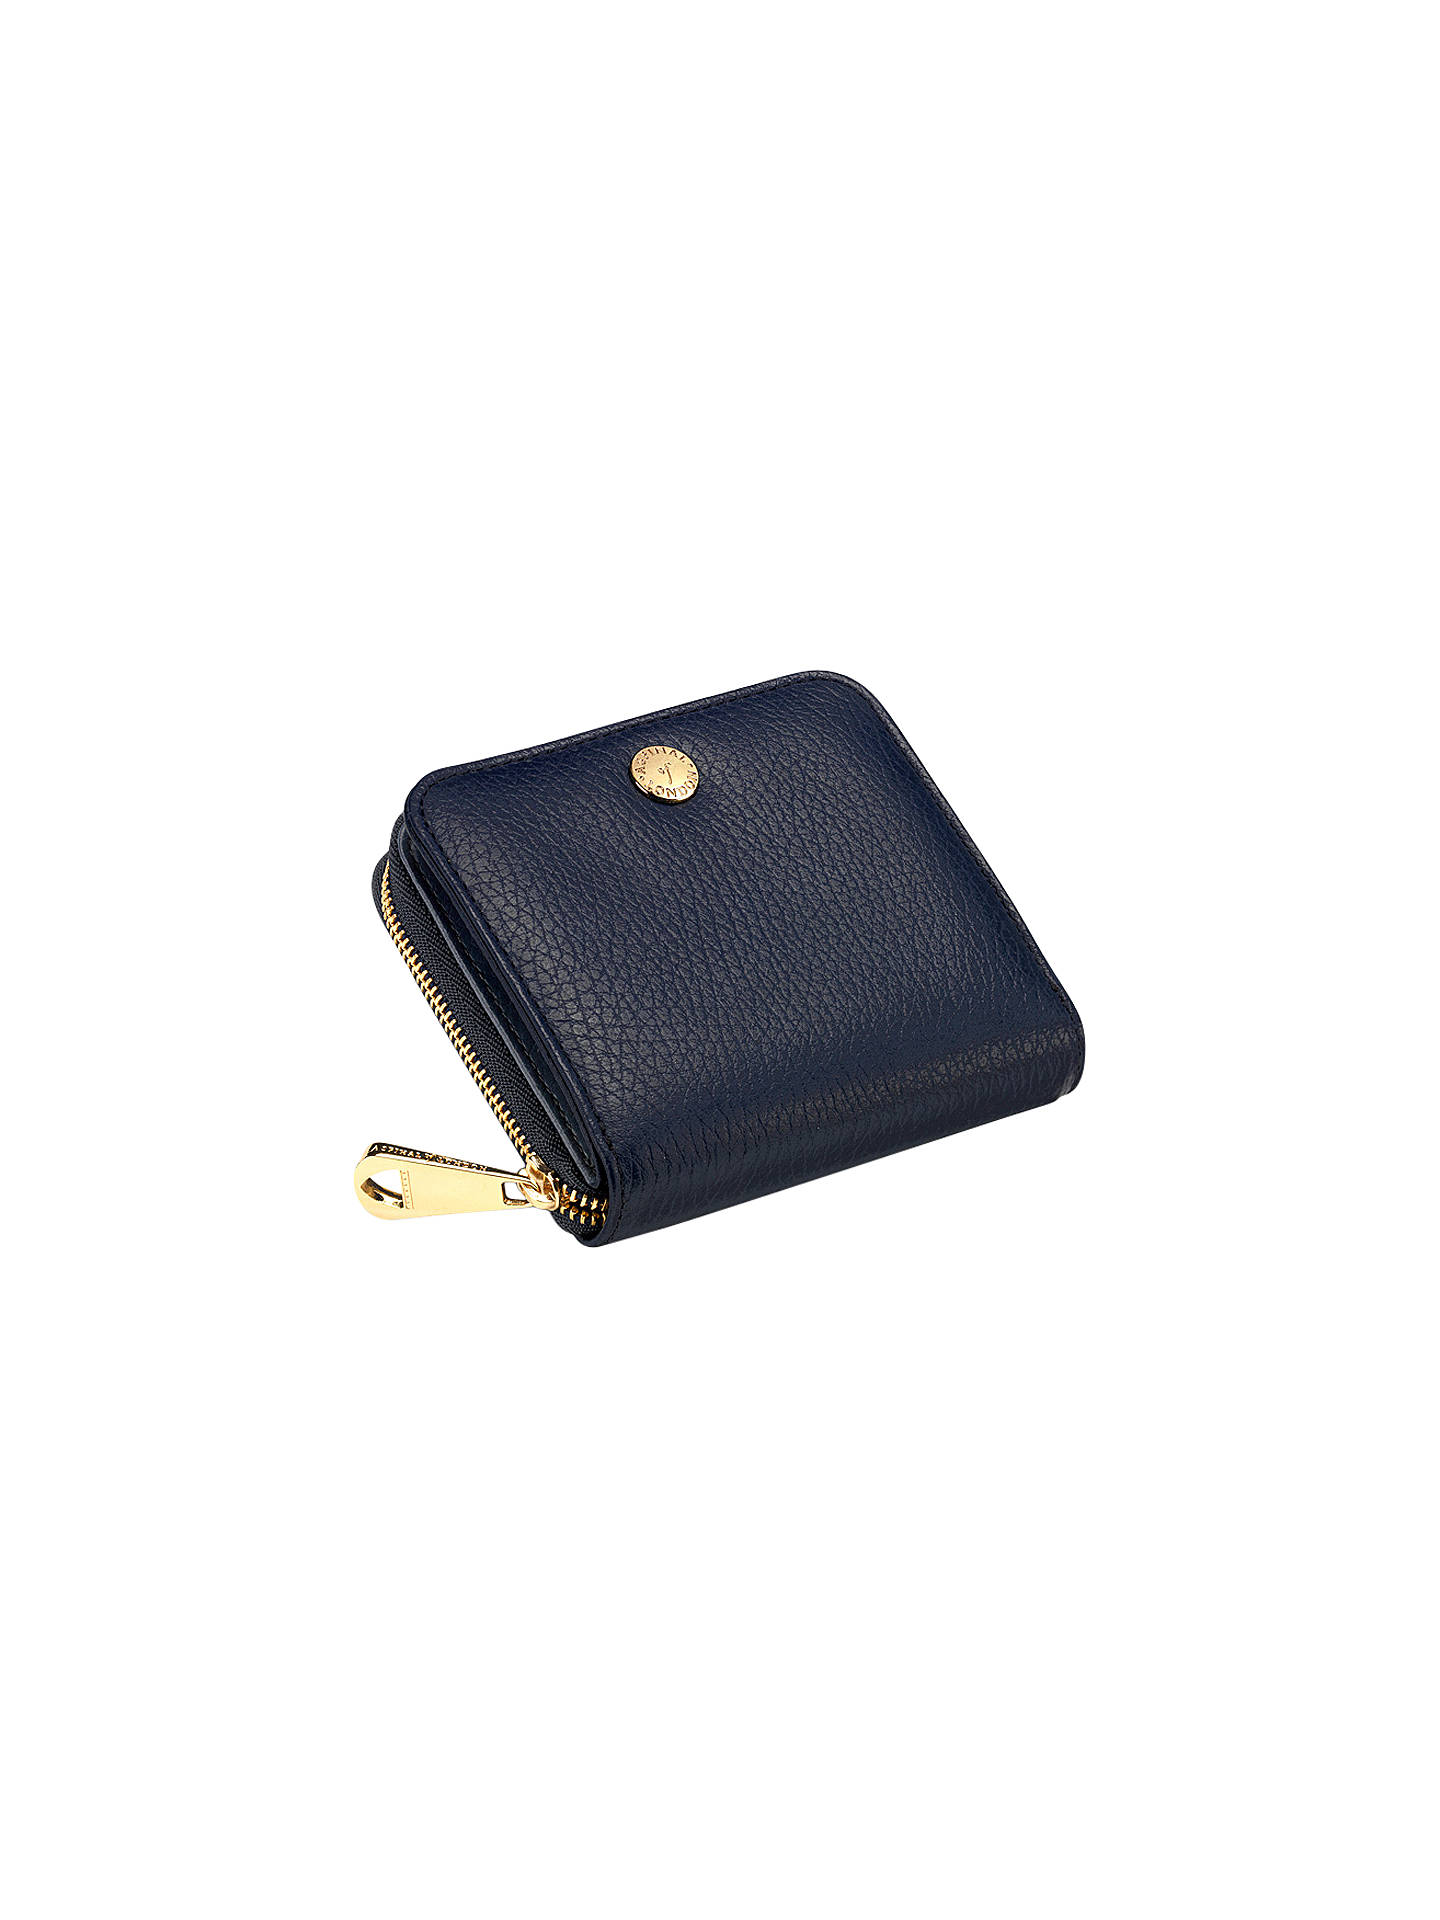 6c3965b5c63b Aspinal of London Katie Mini Continental Leather Zipped Purse at ...